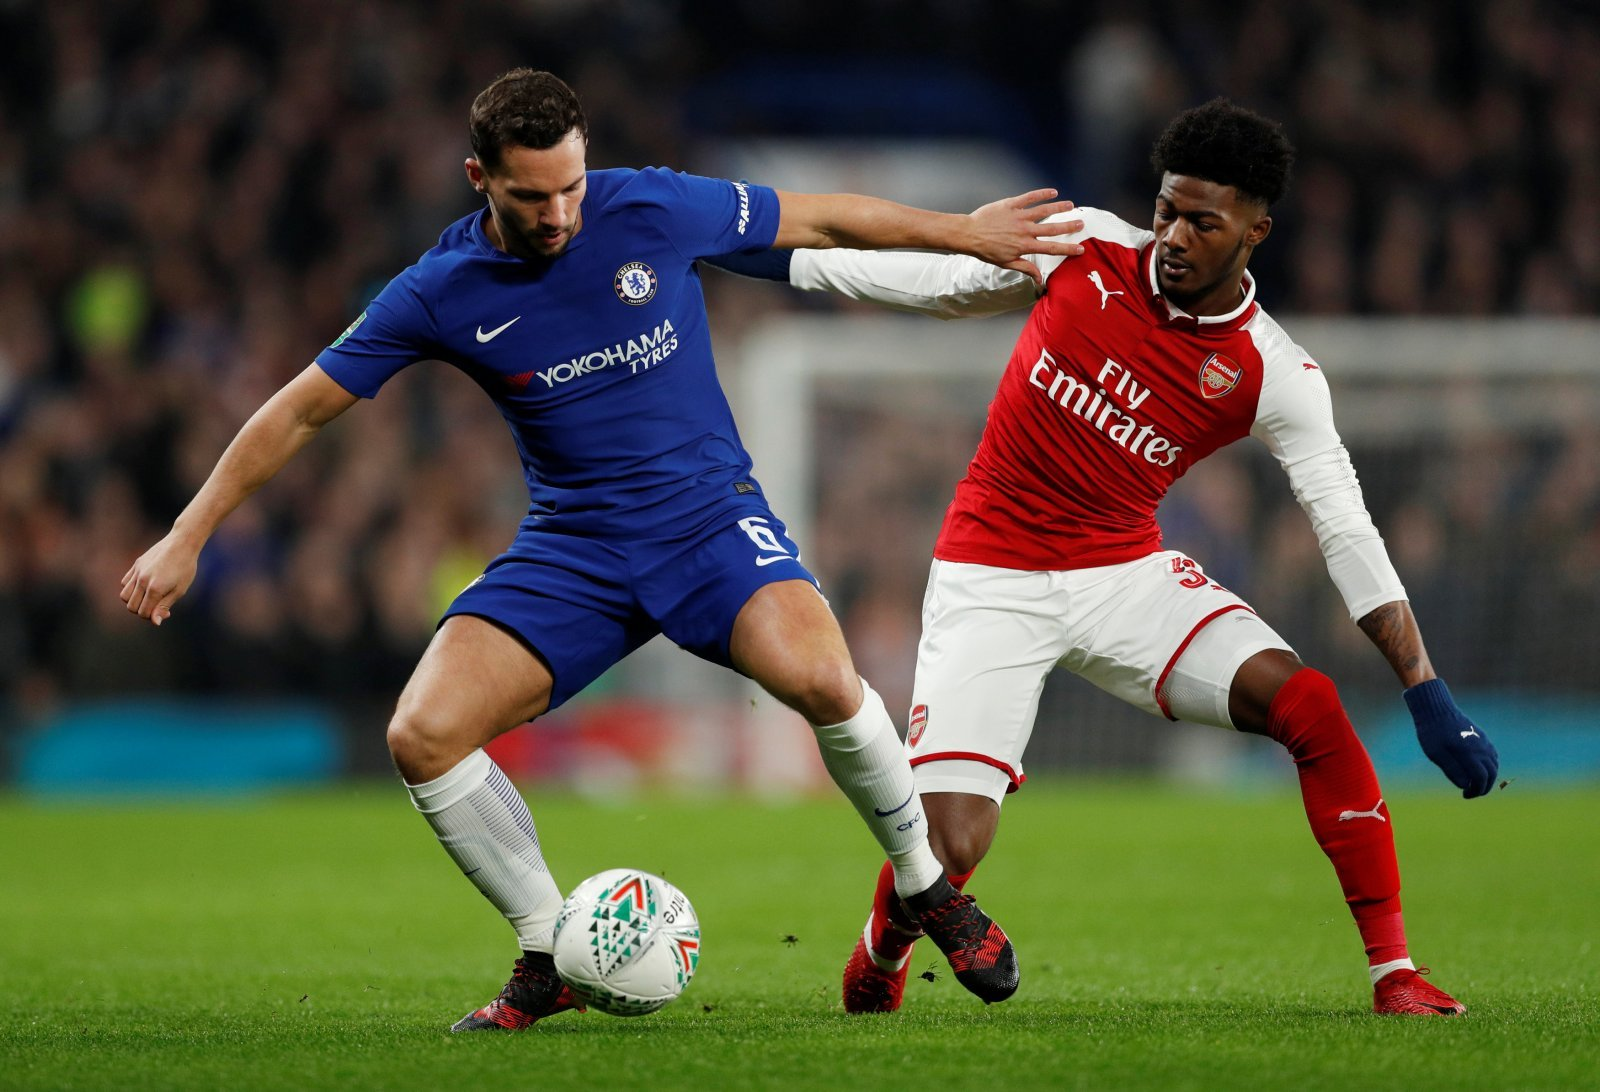 Golovin's arrival could mean the end of Drinkwater's Chelsea career